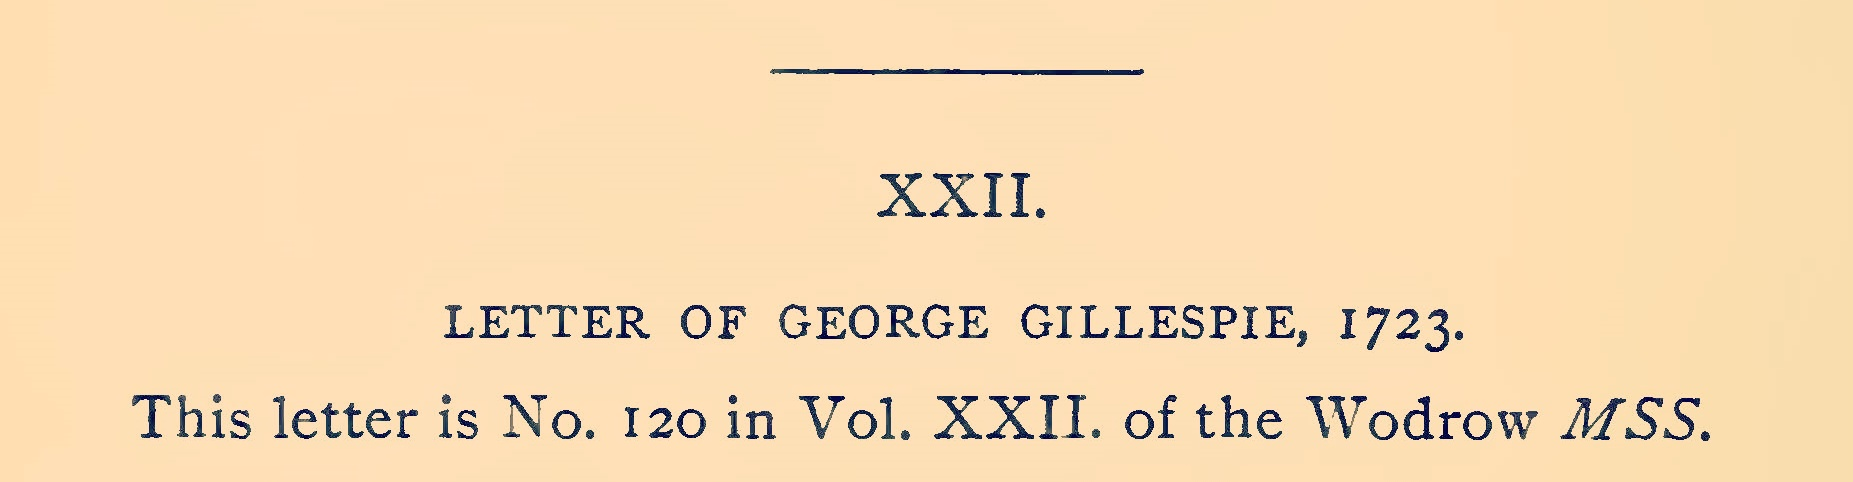 Gillespie, George, 1723 Letter Title Page.jpg